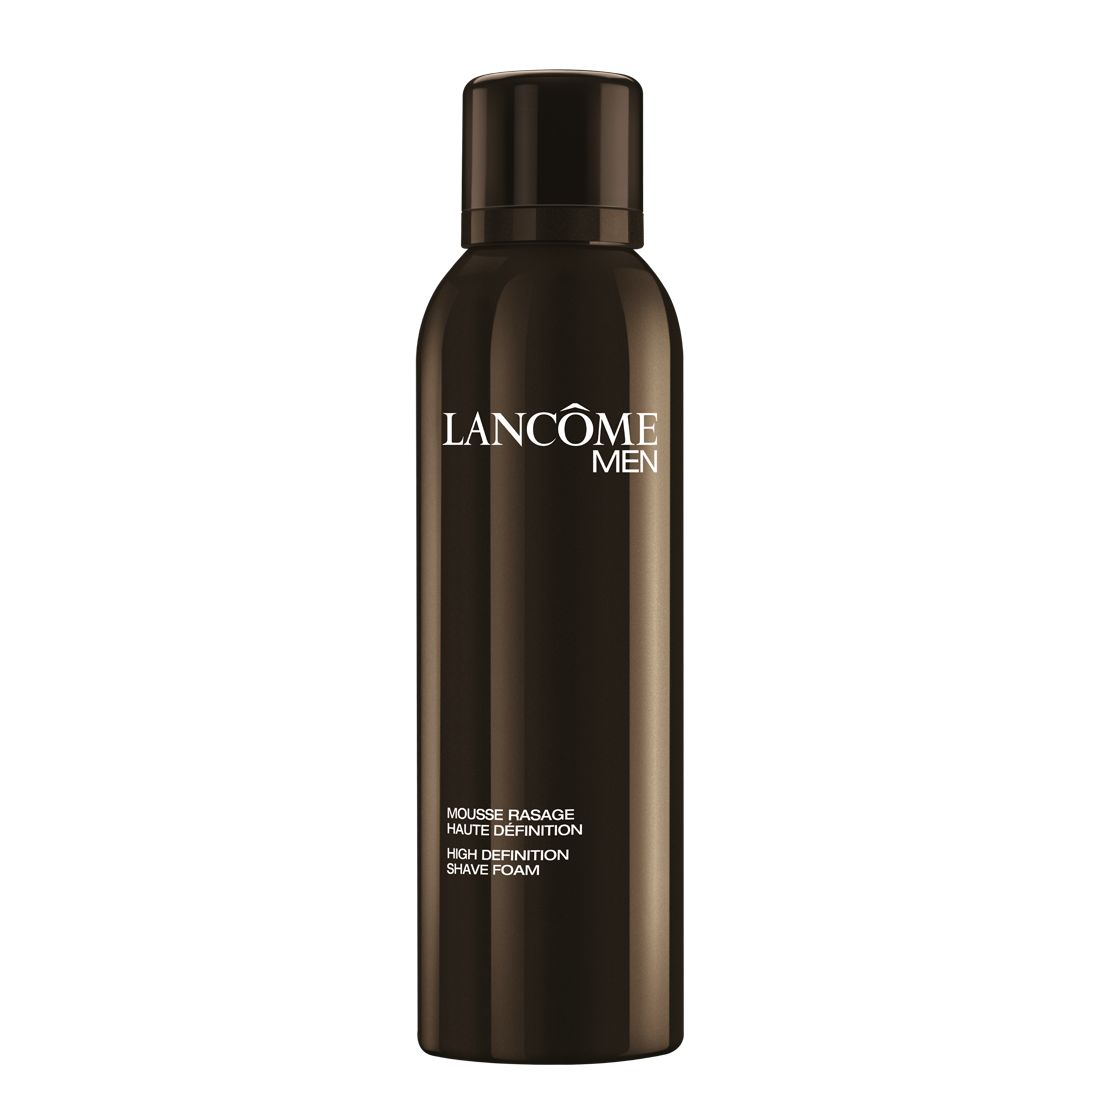 Lancôme Men High Definition Shaving Foam 200ml